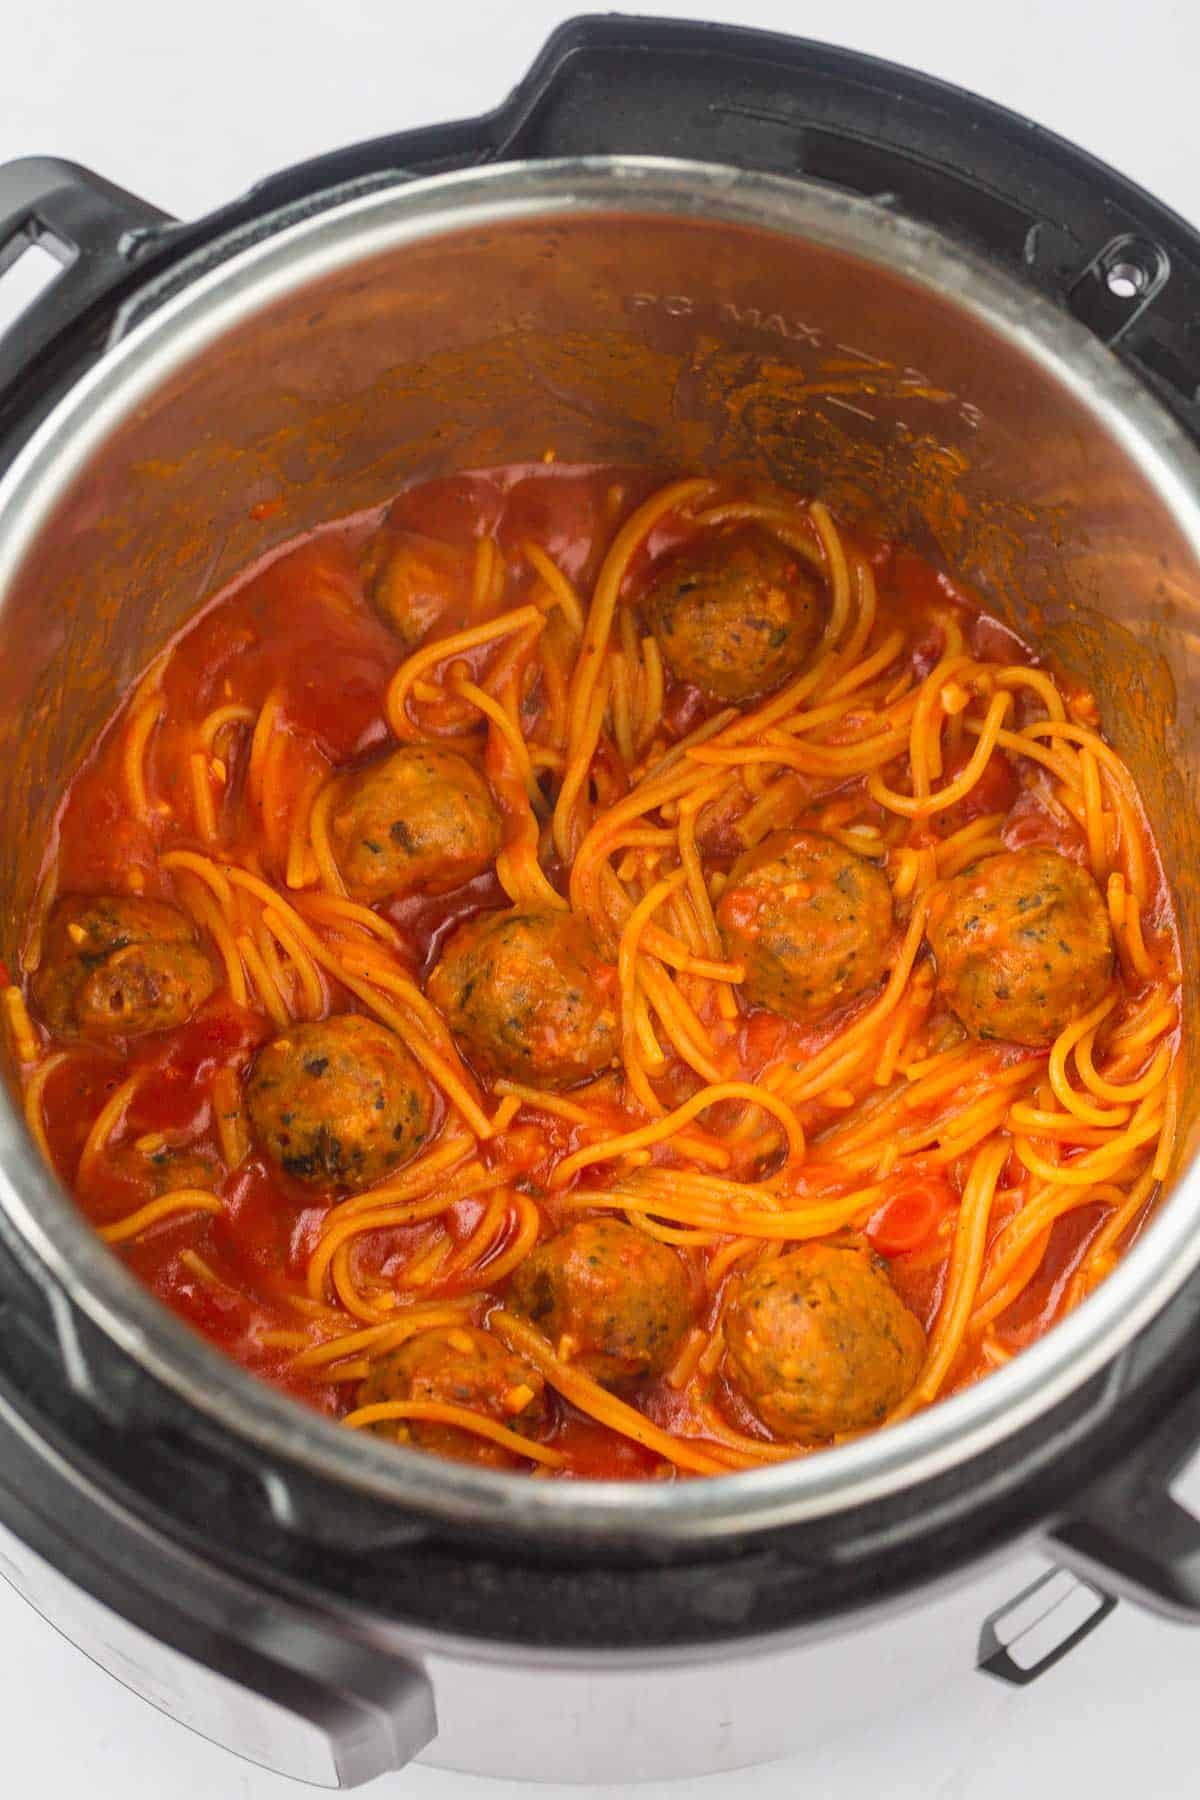 Cooked Spaghetti and meatballs in the Instant Pot